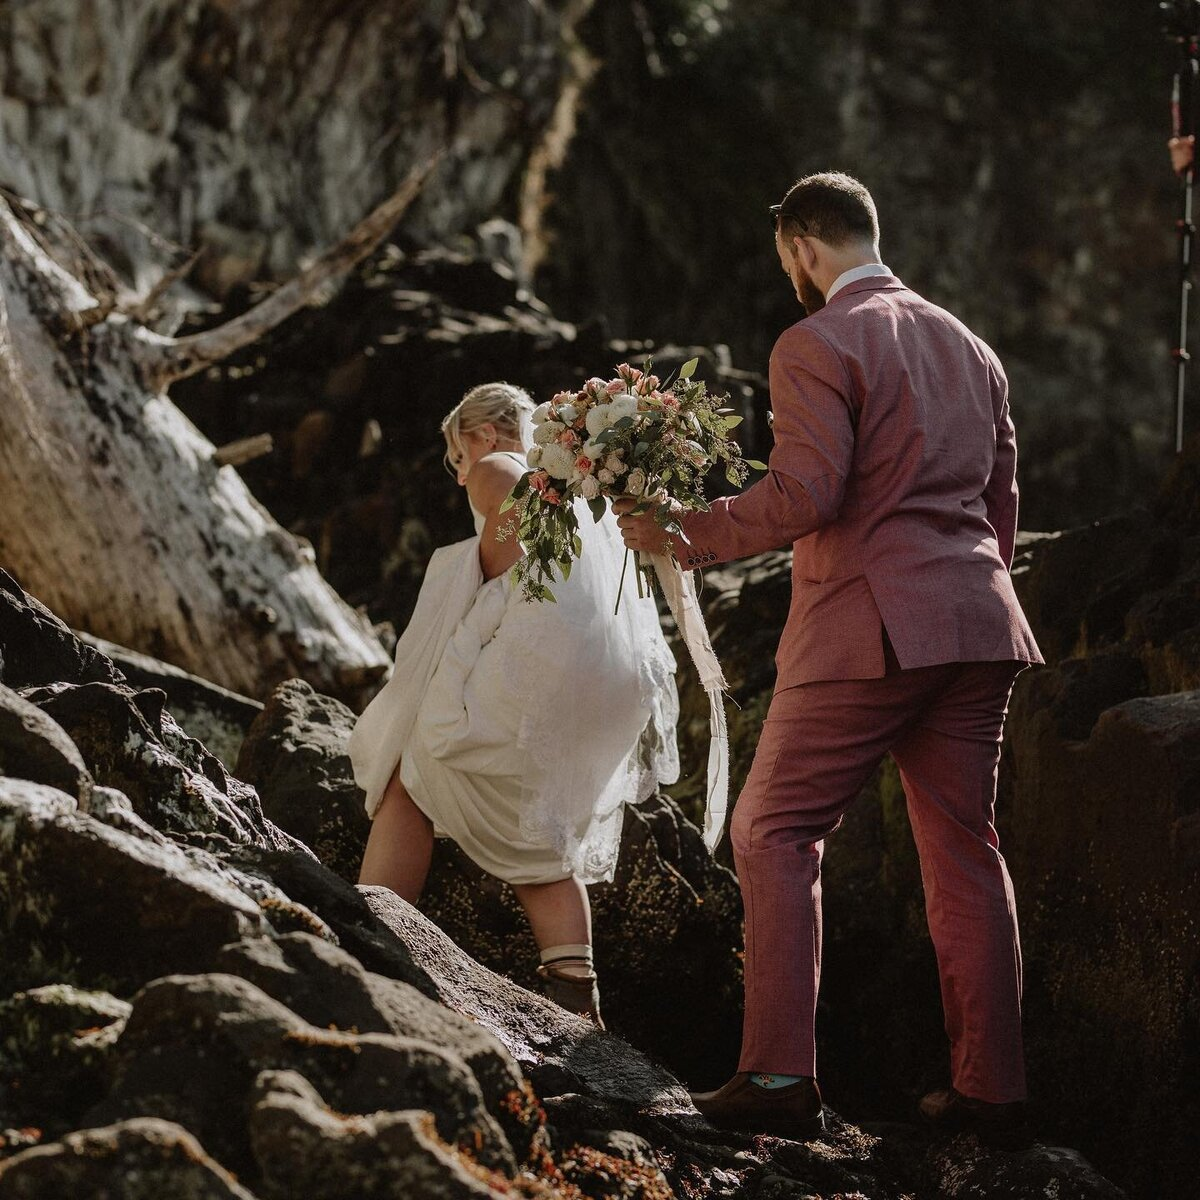 Couple hiking up cliff in wedding dress Oregon